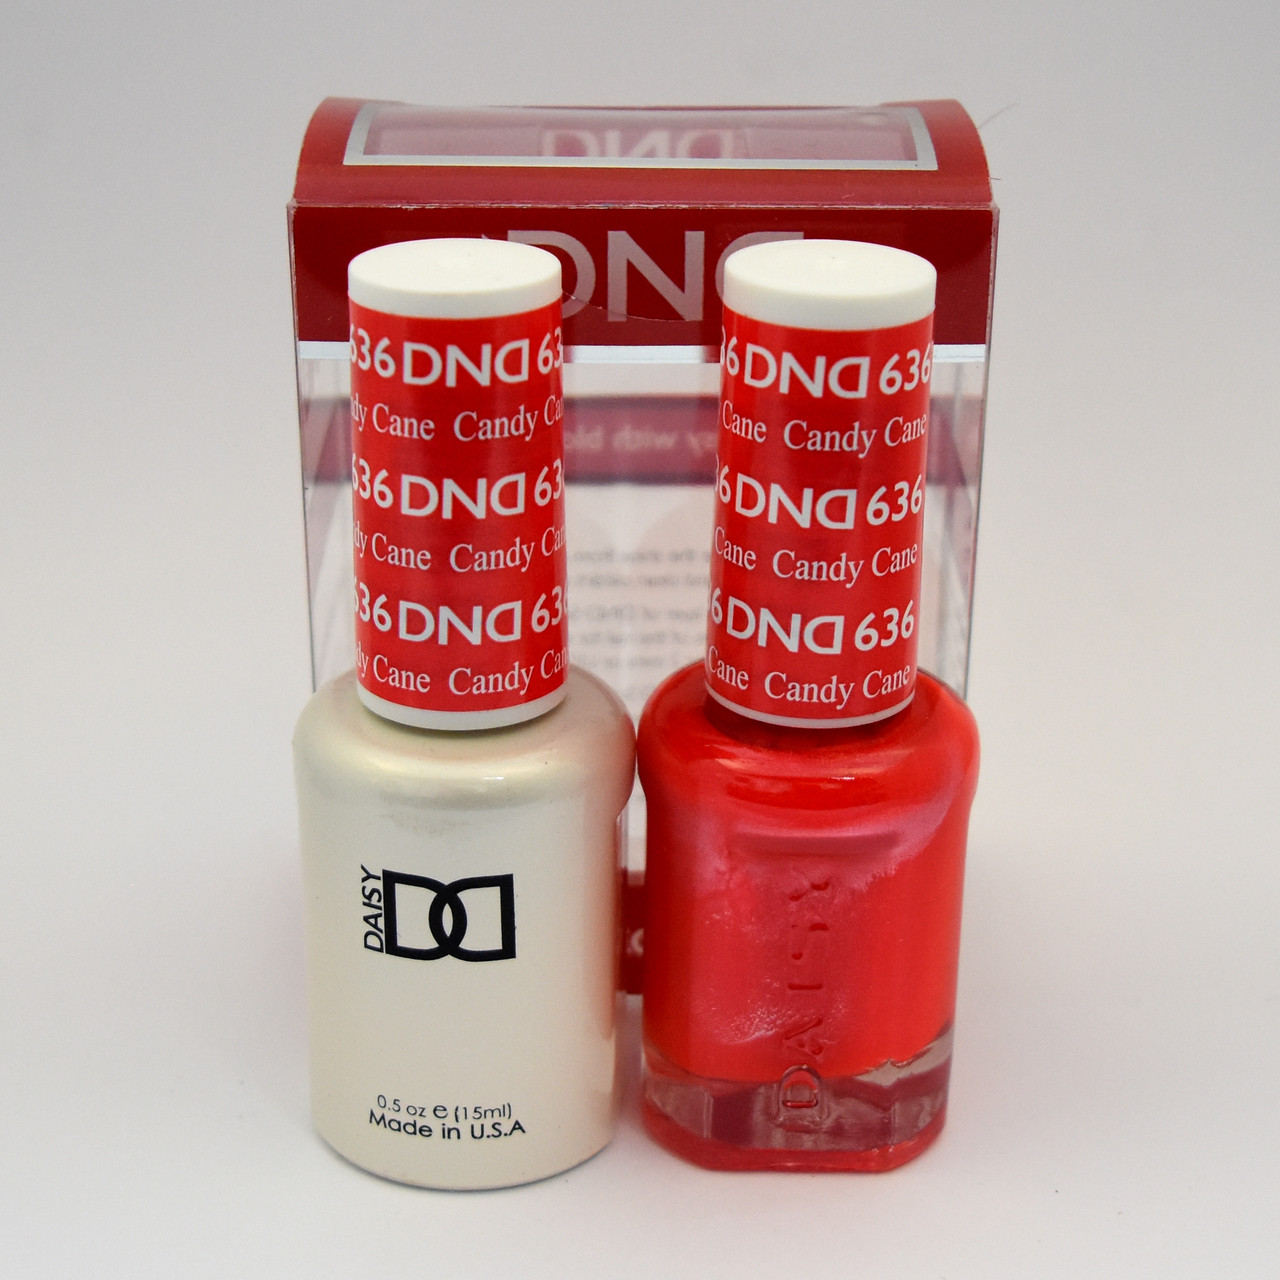 Daisy DND Duo GEL + MATCHING Nail Polish 636 - Home Nail Supply